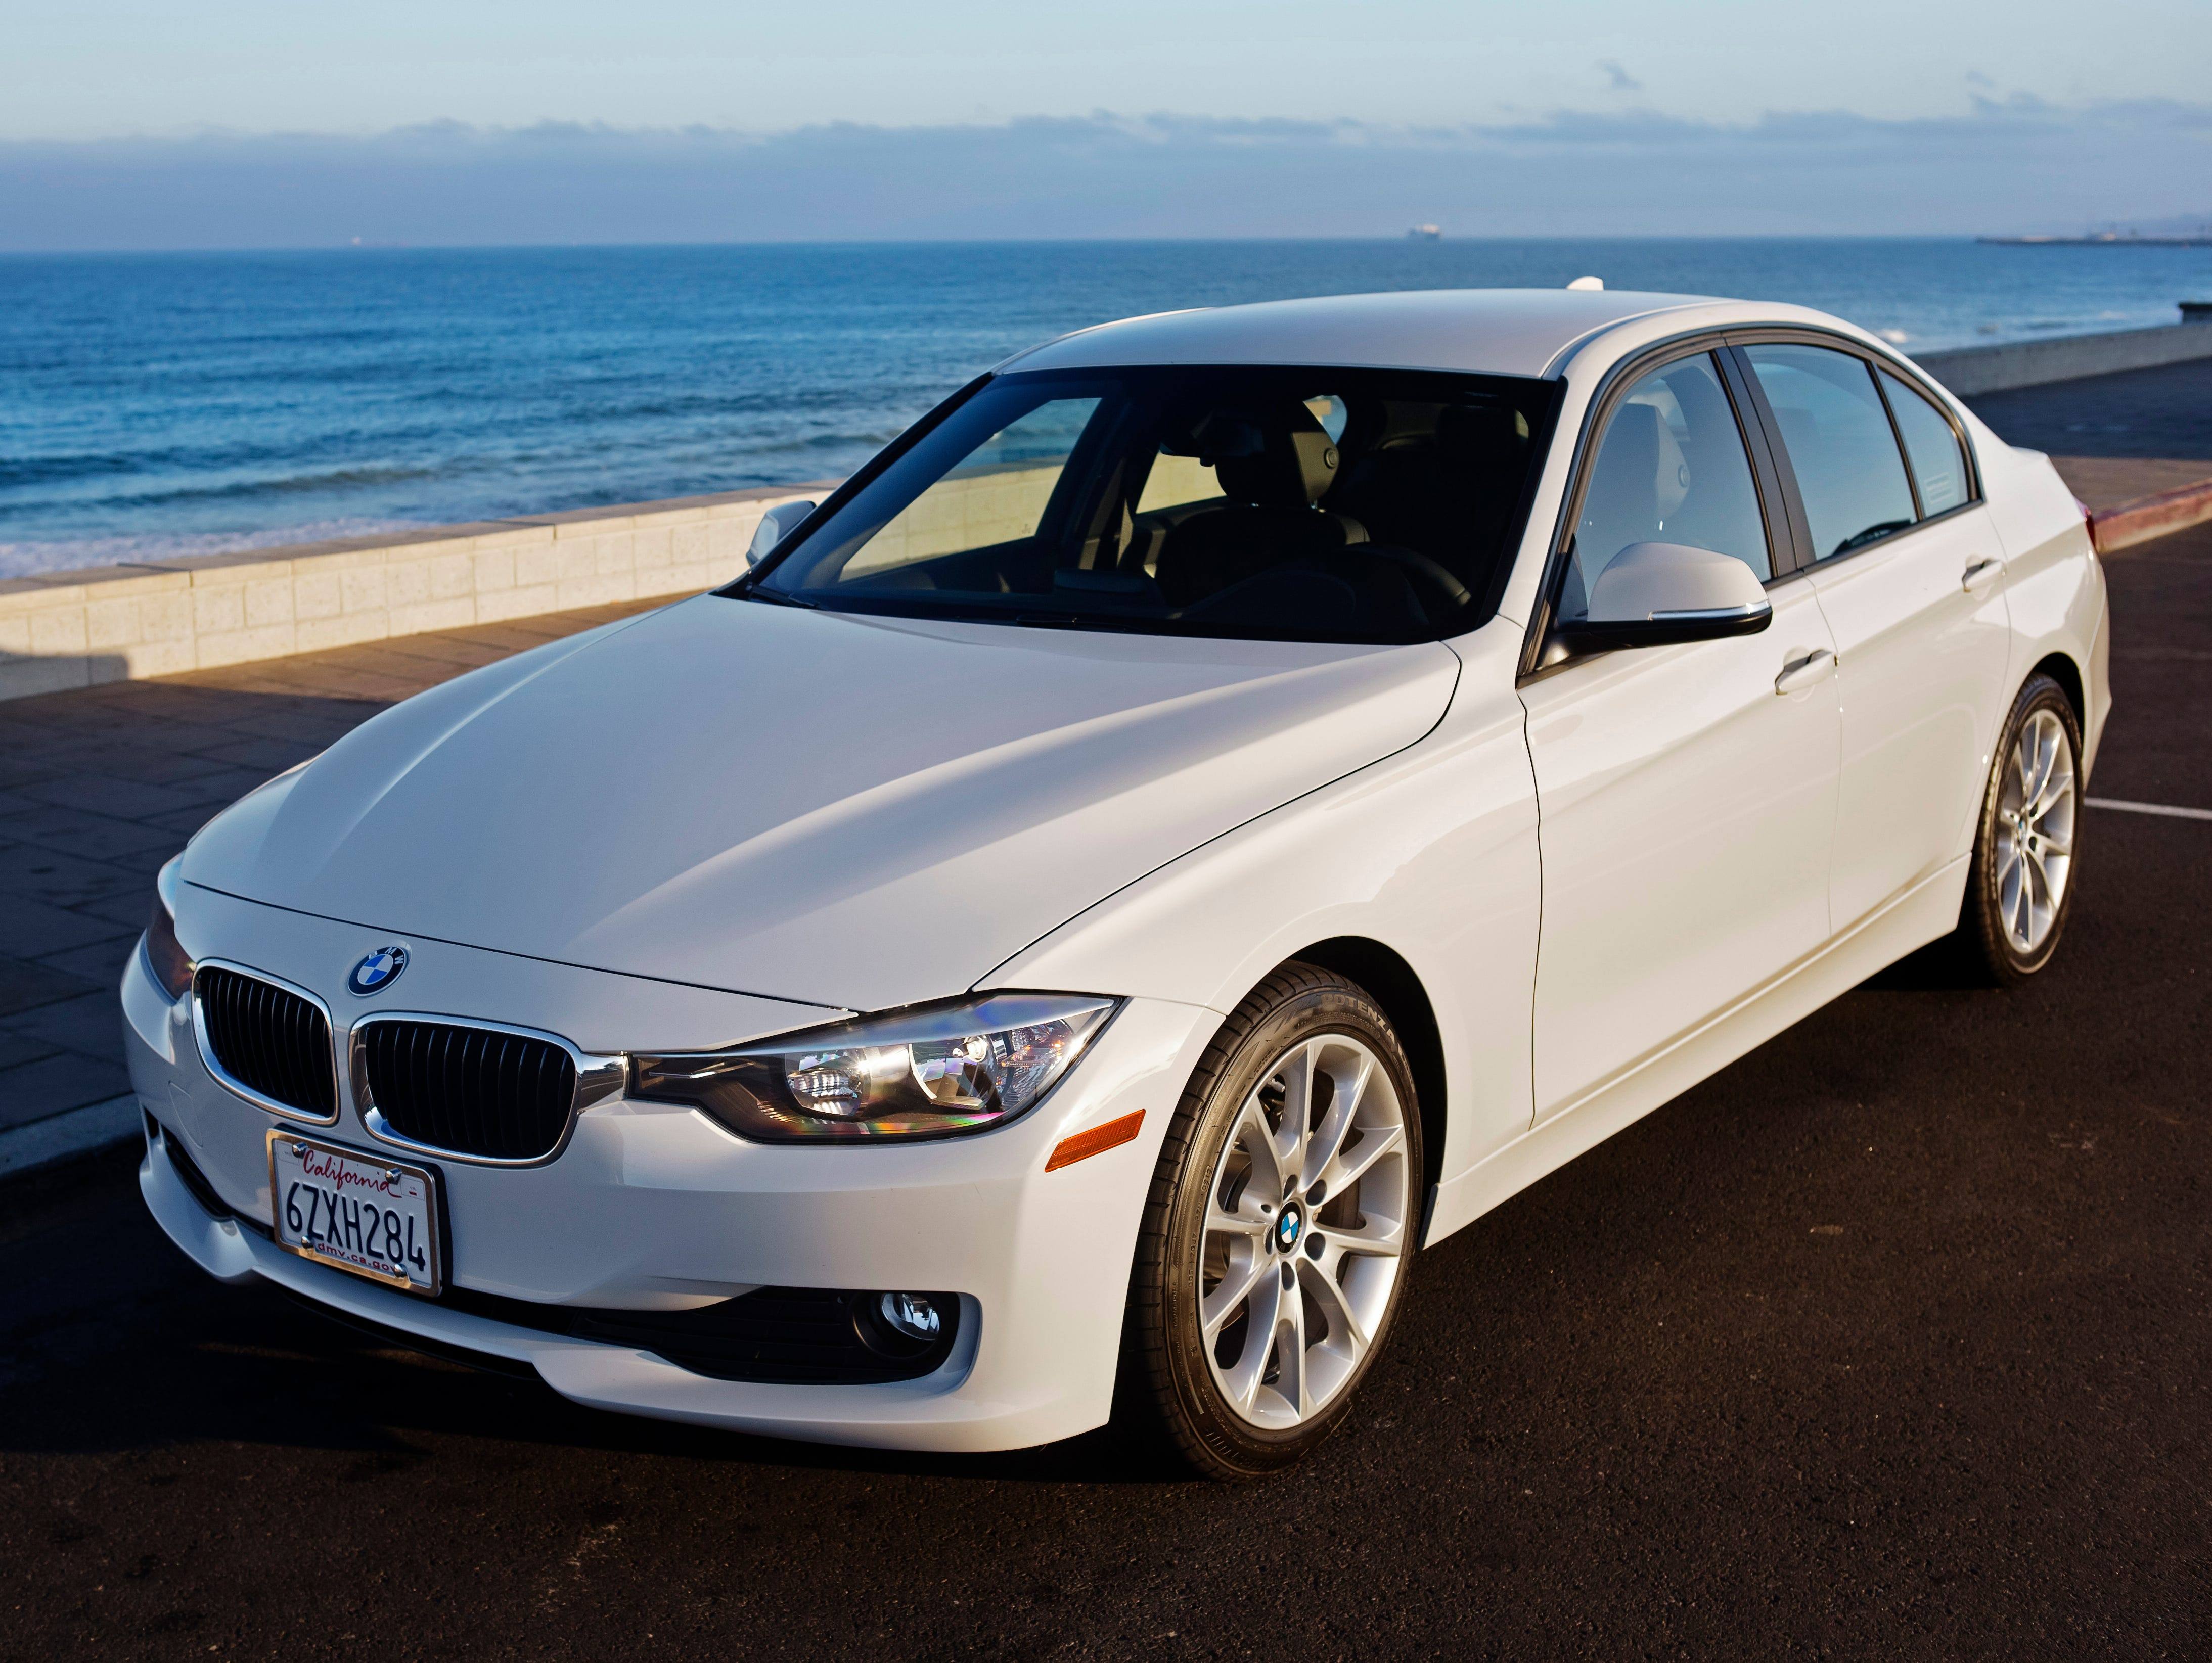 This year's Edmunds.com Top 10 Best Cars for Short Drivers includes the BMW 3-series starting at $33,475 (2013 BMW 320i sedan shown here).